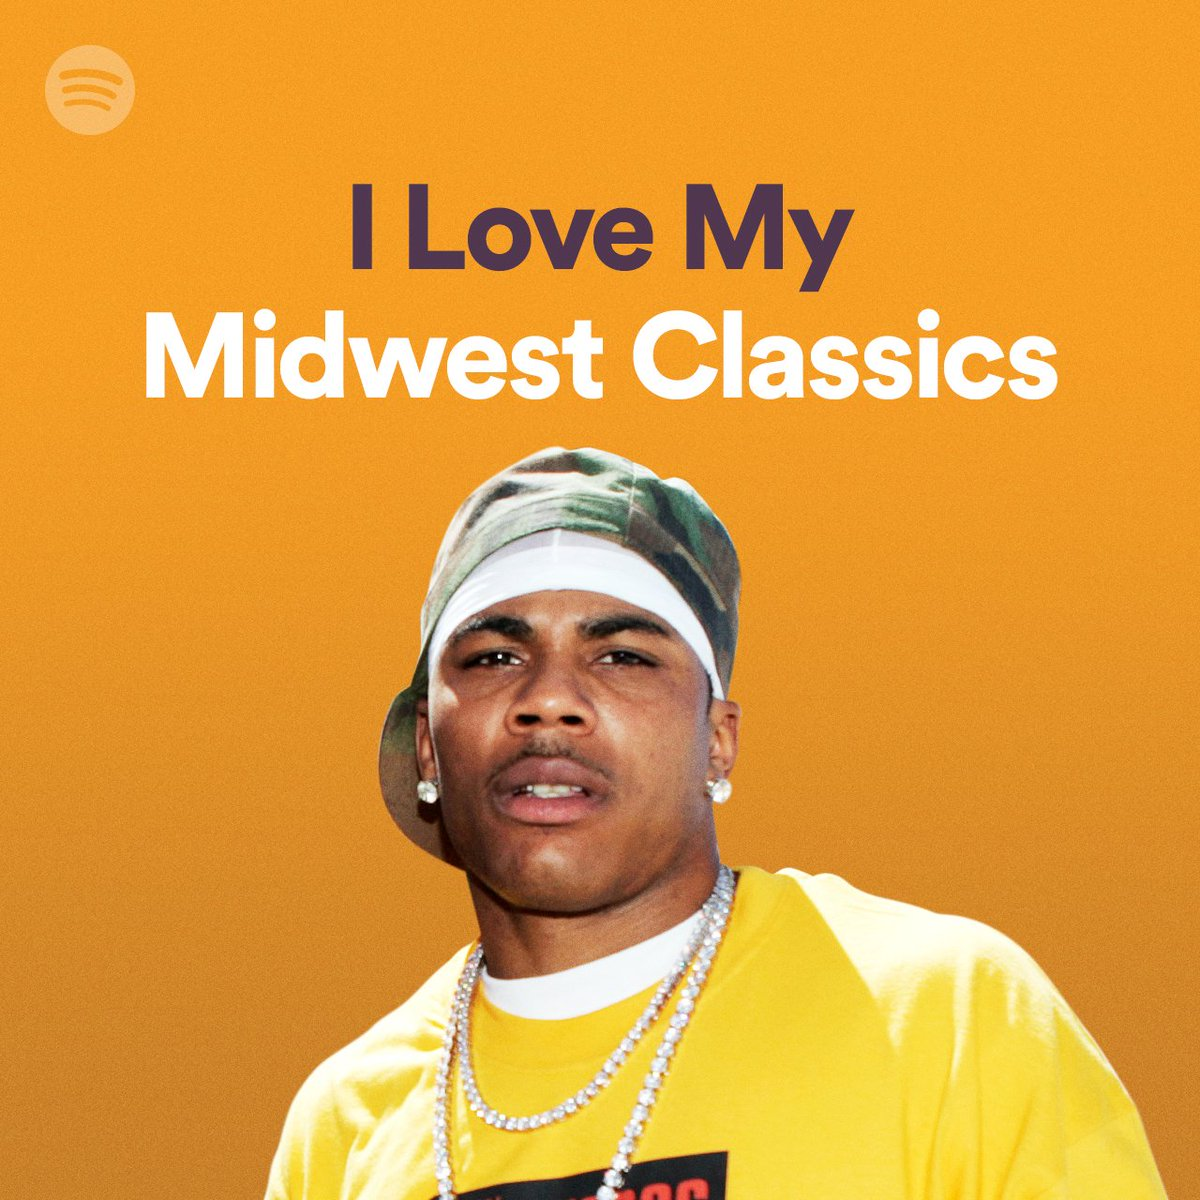 Were taking it back to the 2000s with our new I Love My Midwest Classics playlist featuring timeless songs from @Nelly_Mo, @kanyewest, @KidCudi, @Eminem, @LupeFiasco and more. spoti.fi/MidwestClassics